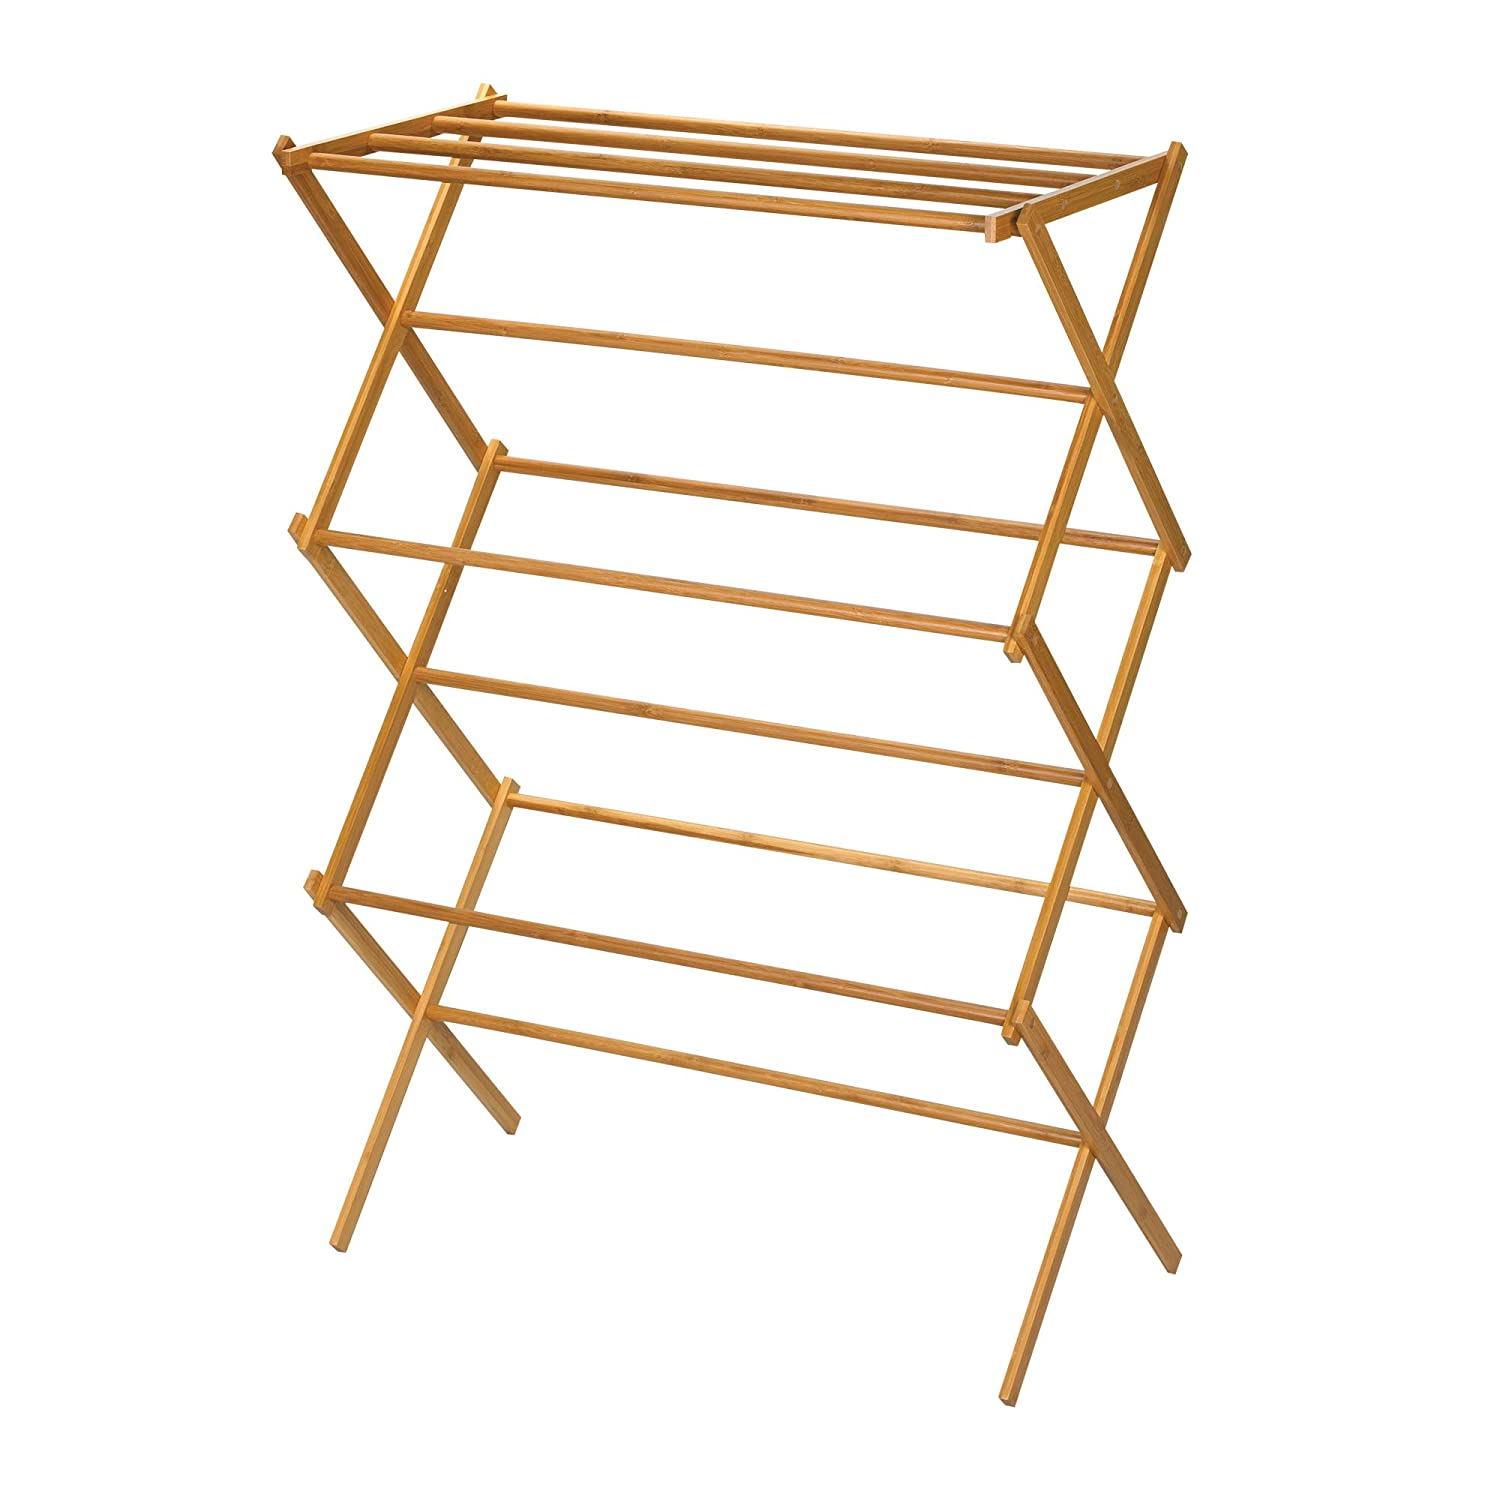 wooden clothes drying rack hanger folding vintage classic